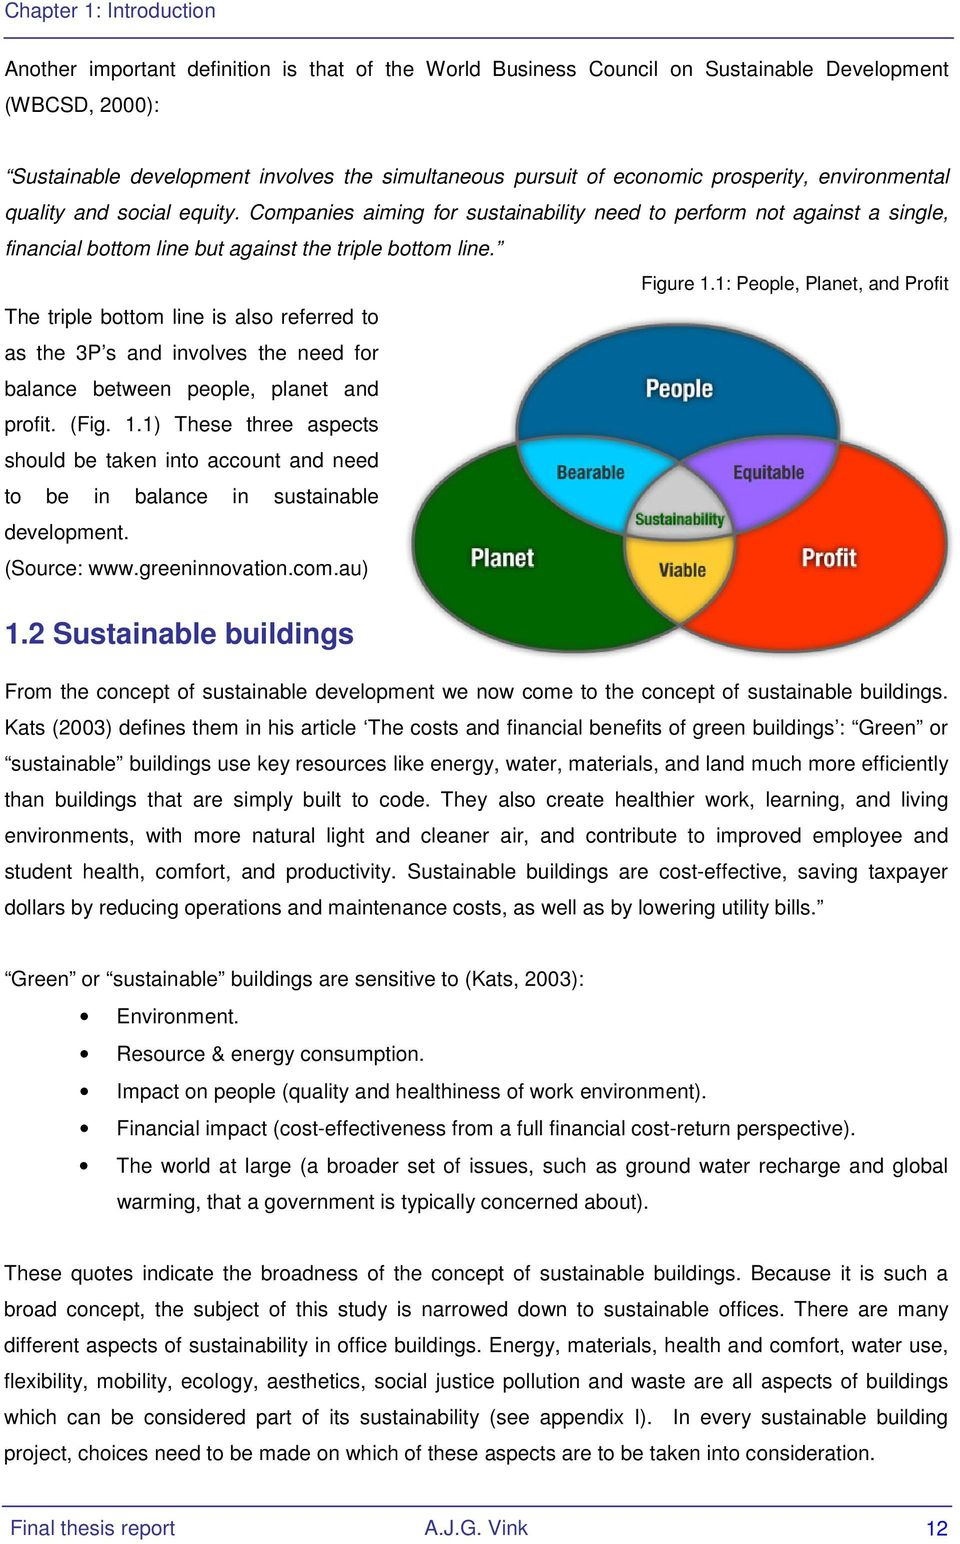 Figure 1.1: People, Planet, and Profit The triple bottom line is also referred to as the 3P s and involves the need for balance between people, planet and profit. (Fig. 1.1) These three aspects should be taken into account and need to be in balance in sustainable development.